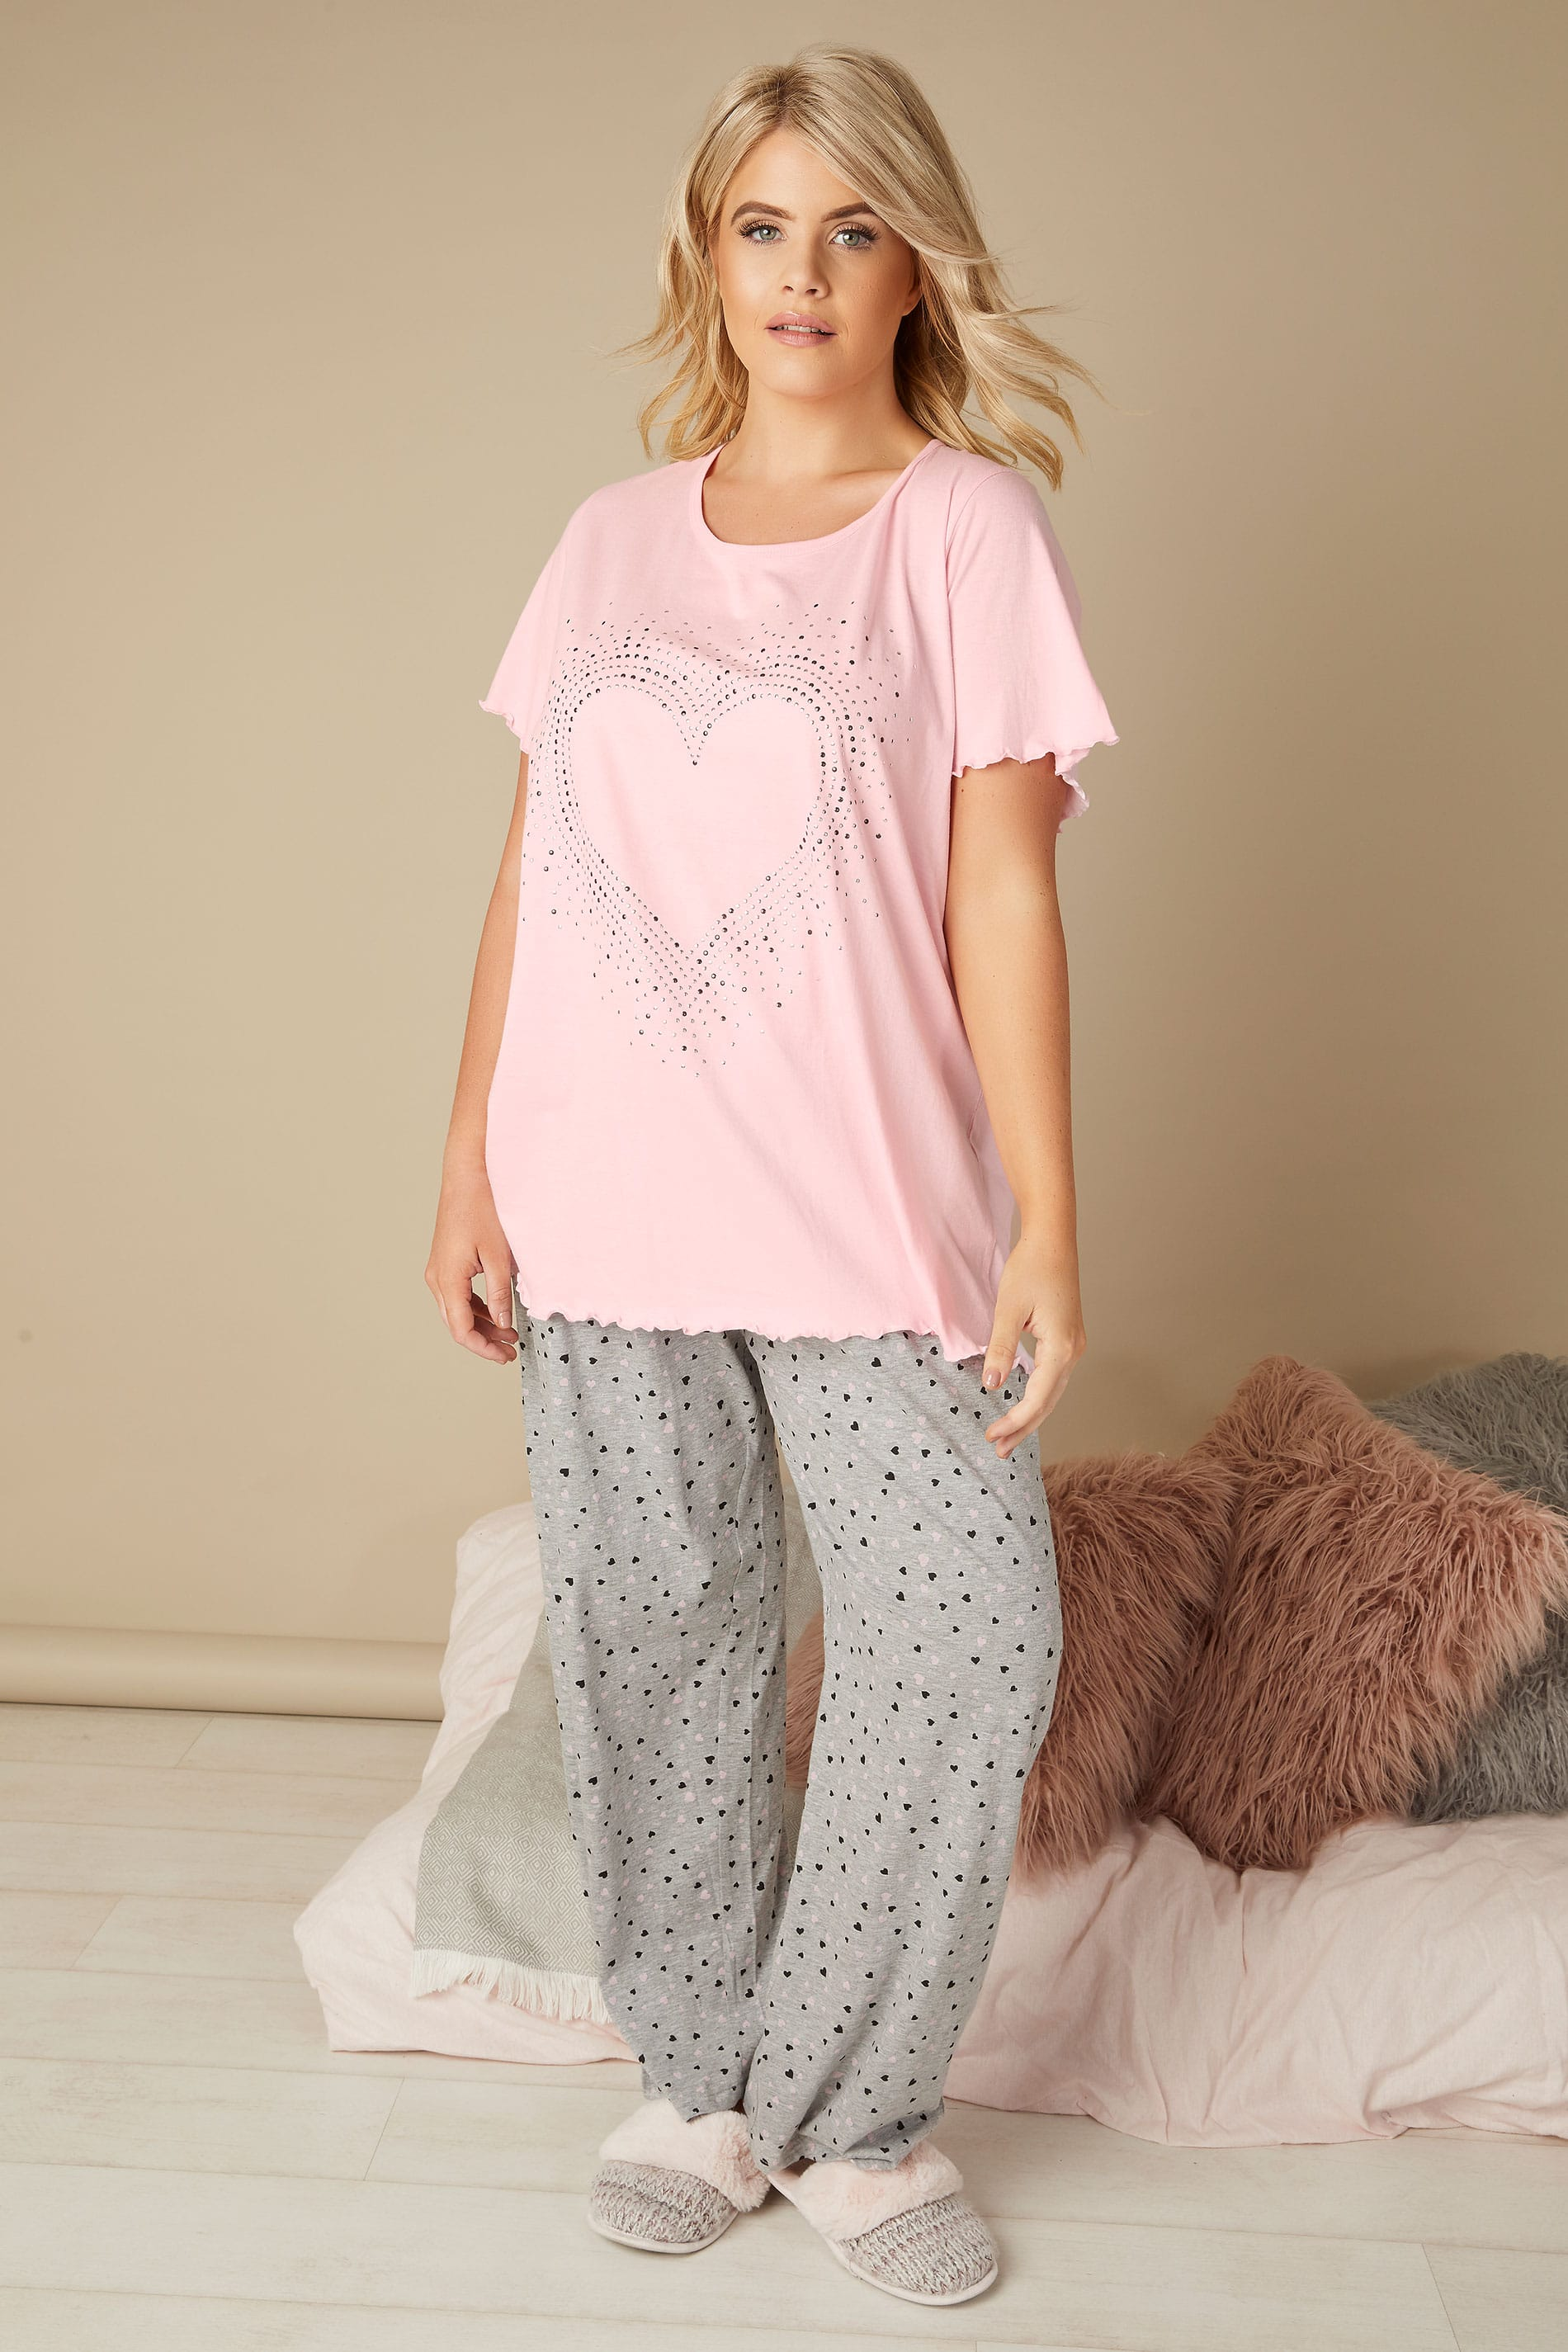 pantalon de pyjama gris avec coeurs taille 44 64. Black Bedroom Furniture Sets. Home Design Ideas